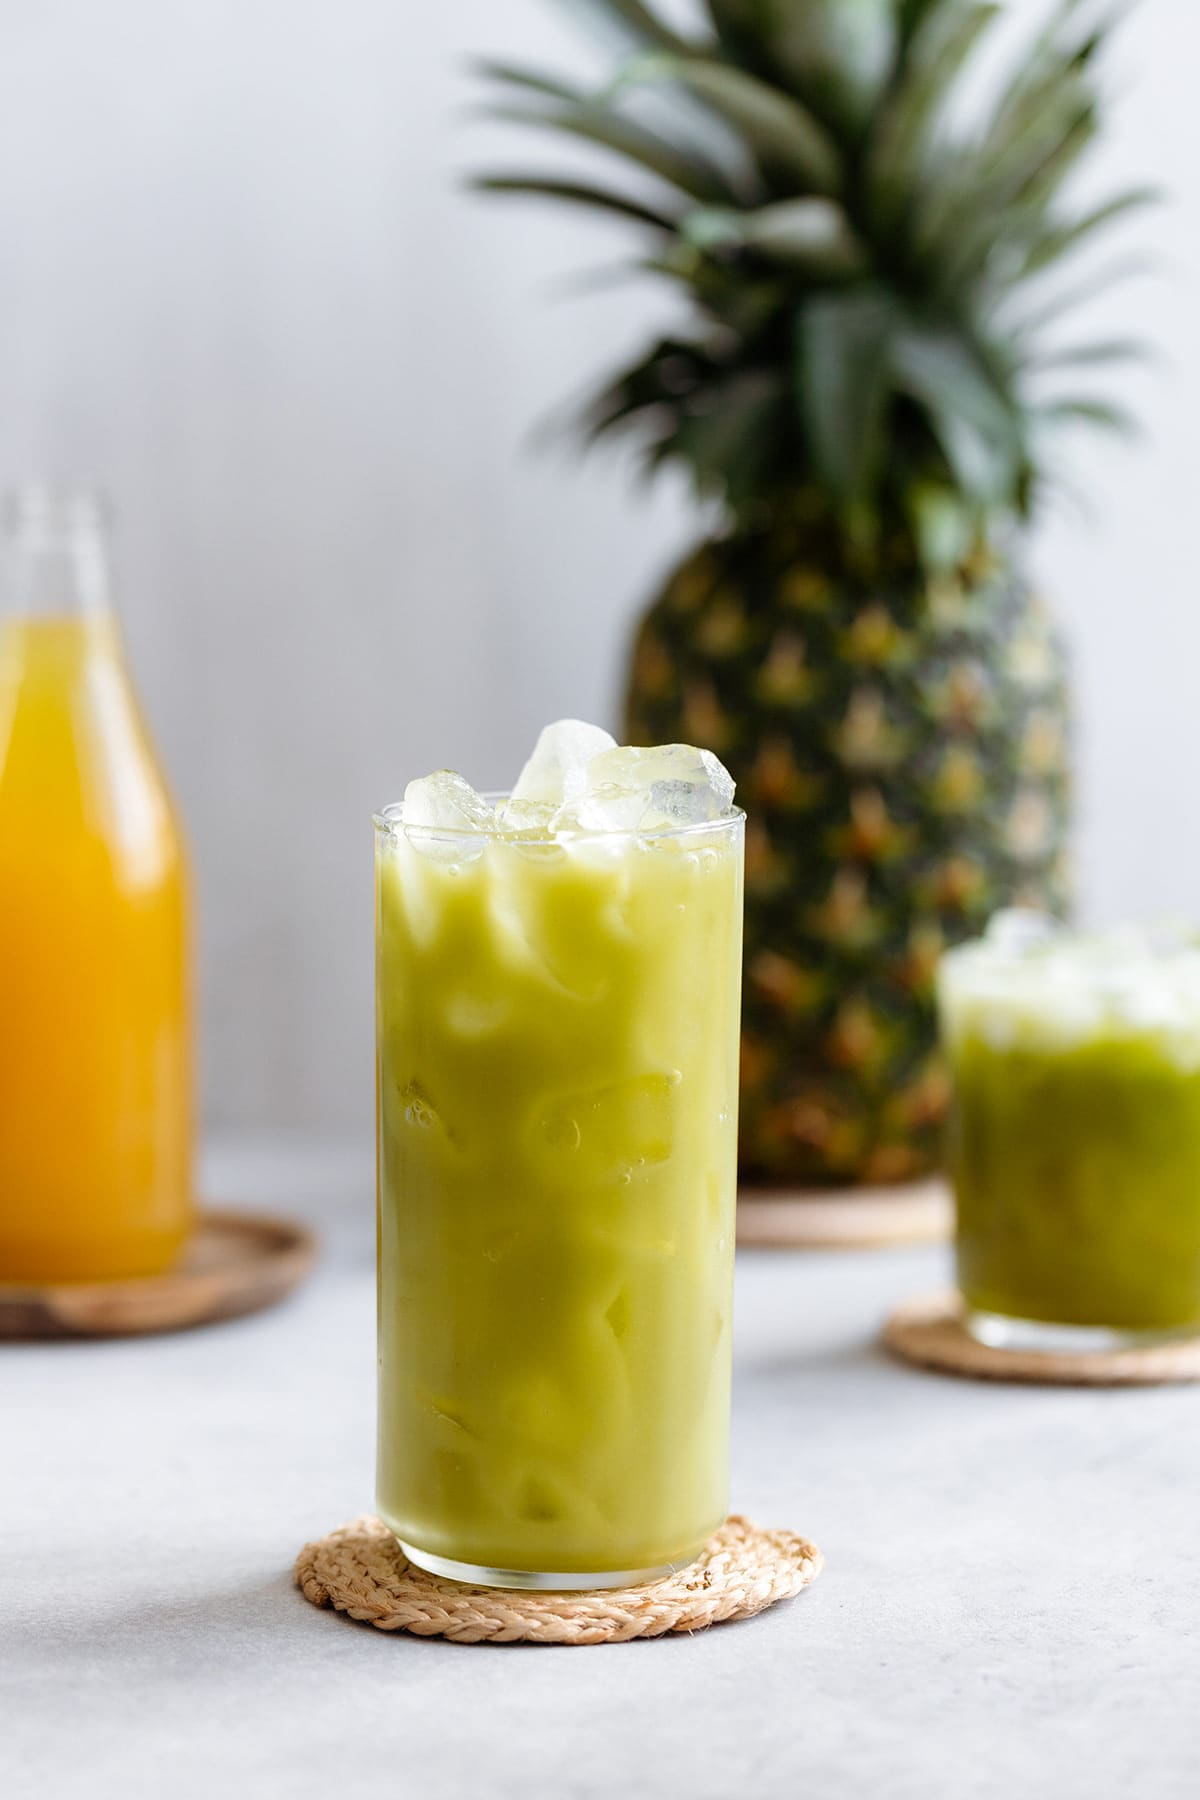 Pineapple drink in a tall glass served over ice on a white background with pineapple in the background.